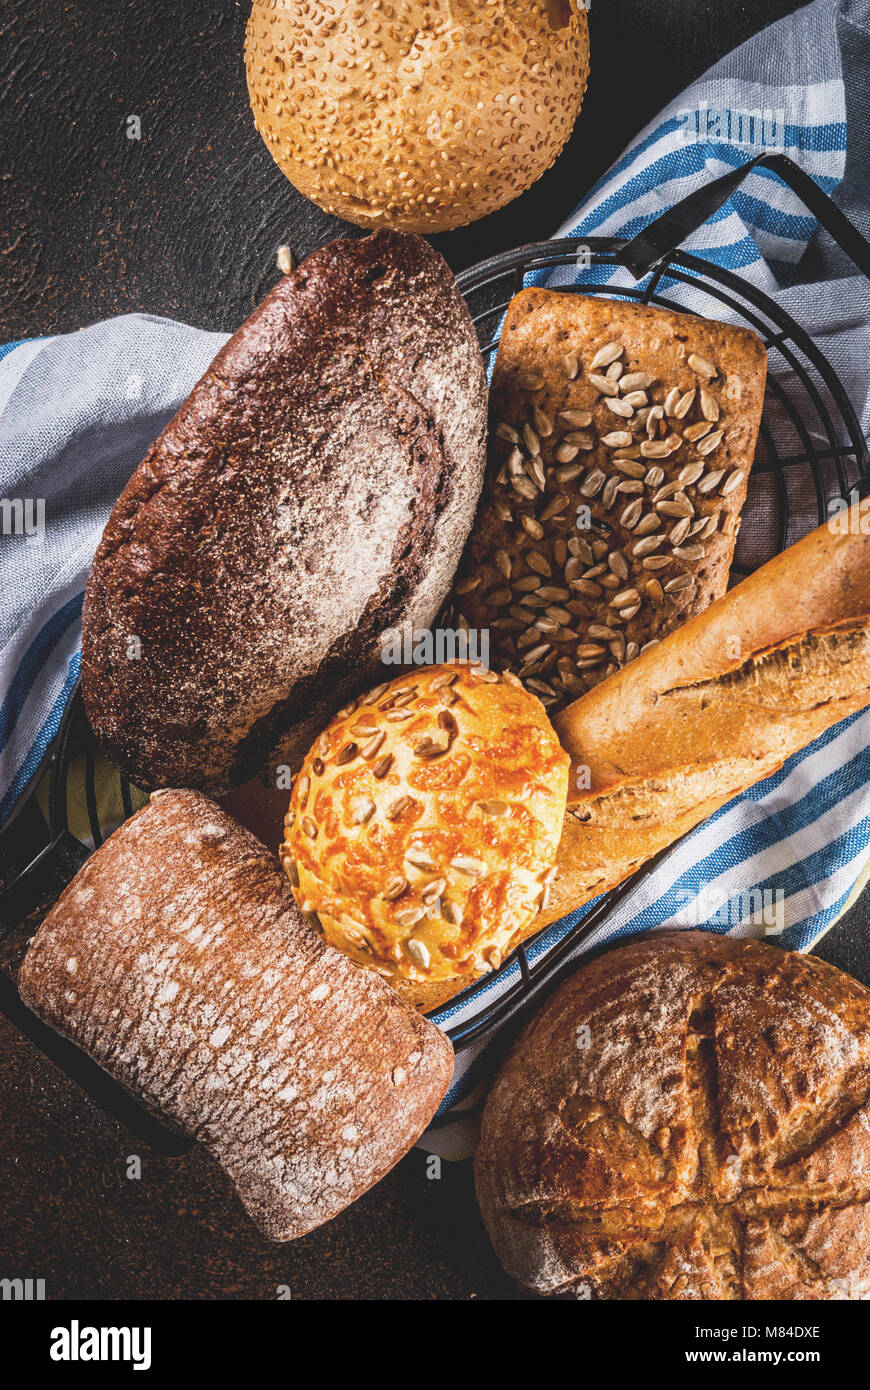 Variety of fresh homemade grain bread, in a metal basket, dark rusty background copy space top view - Stock Image